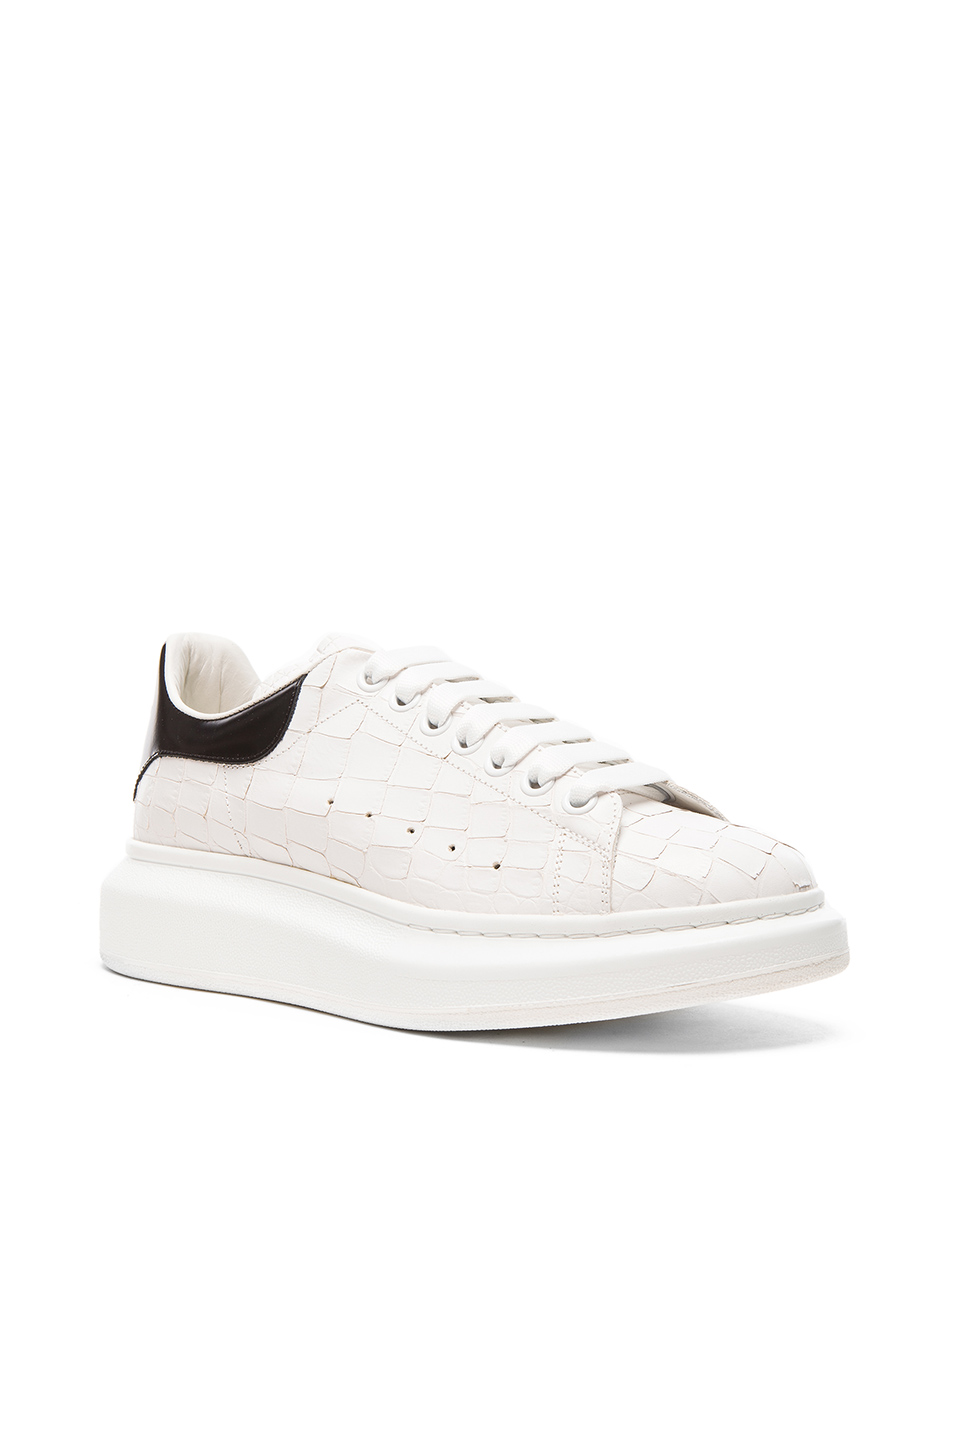 Alexander McQueen Leather Platform Low Top Sneakers in White